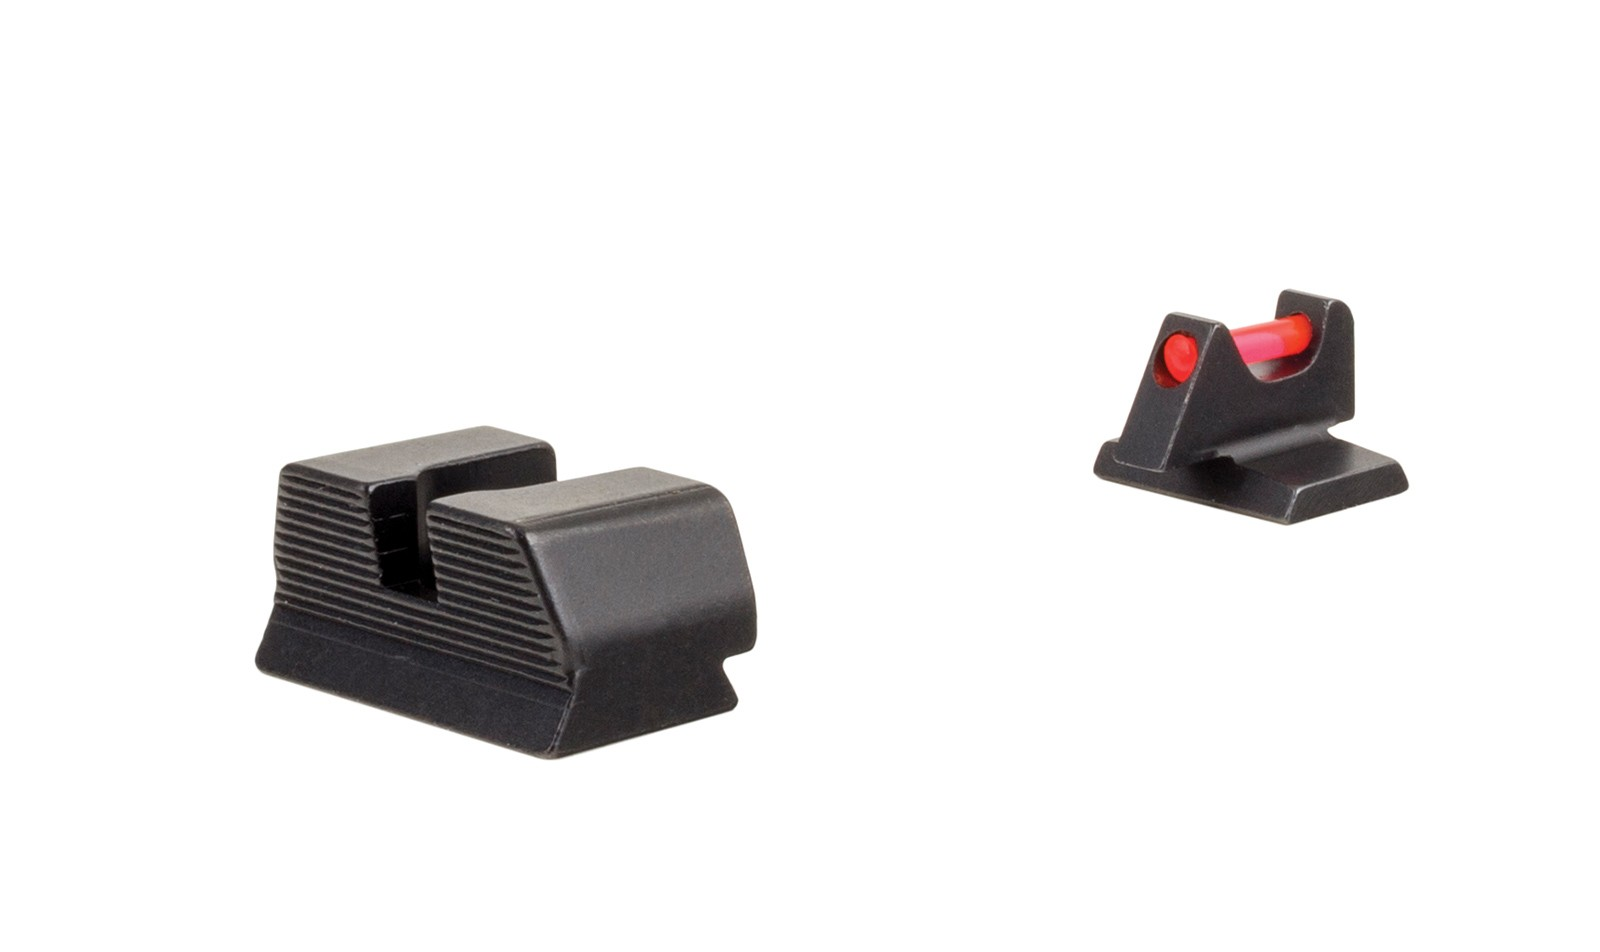 Trijicon<sup>®</sup> Fiber Sights -  FNS-40, FNX-40, FNP-40